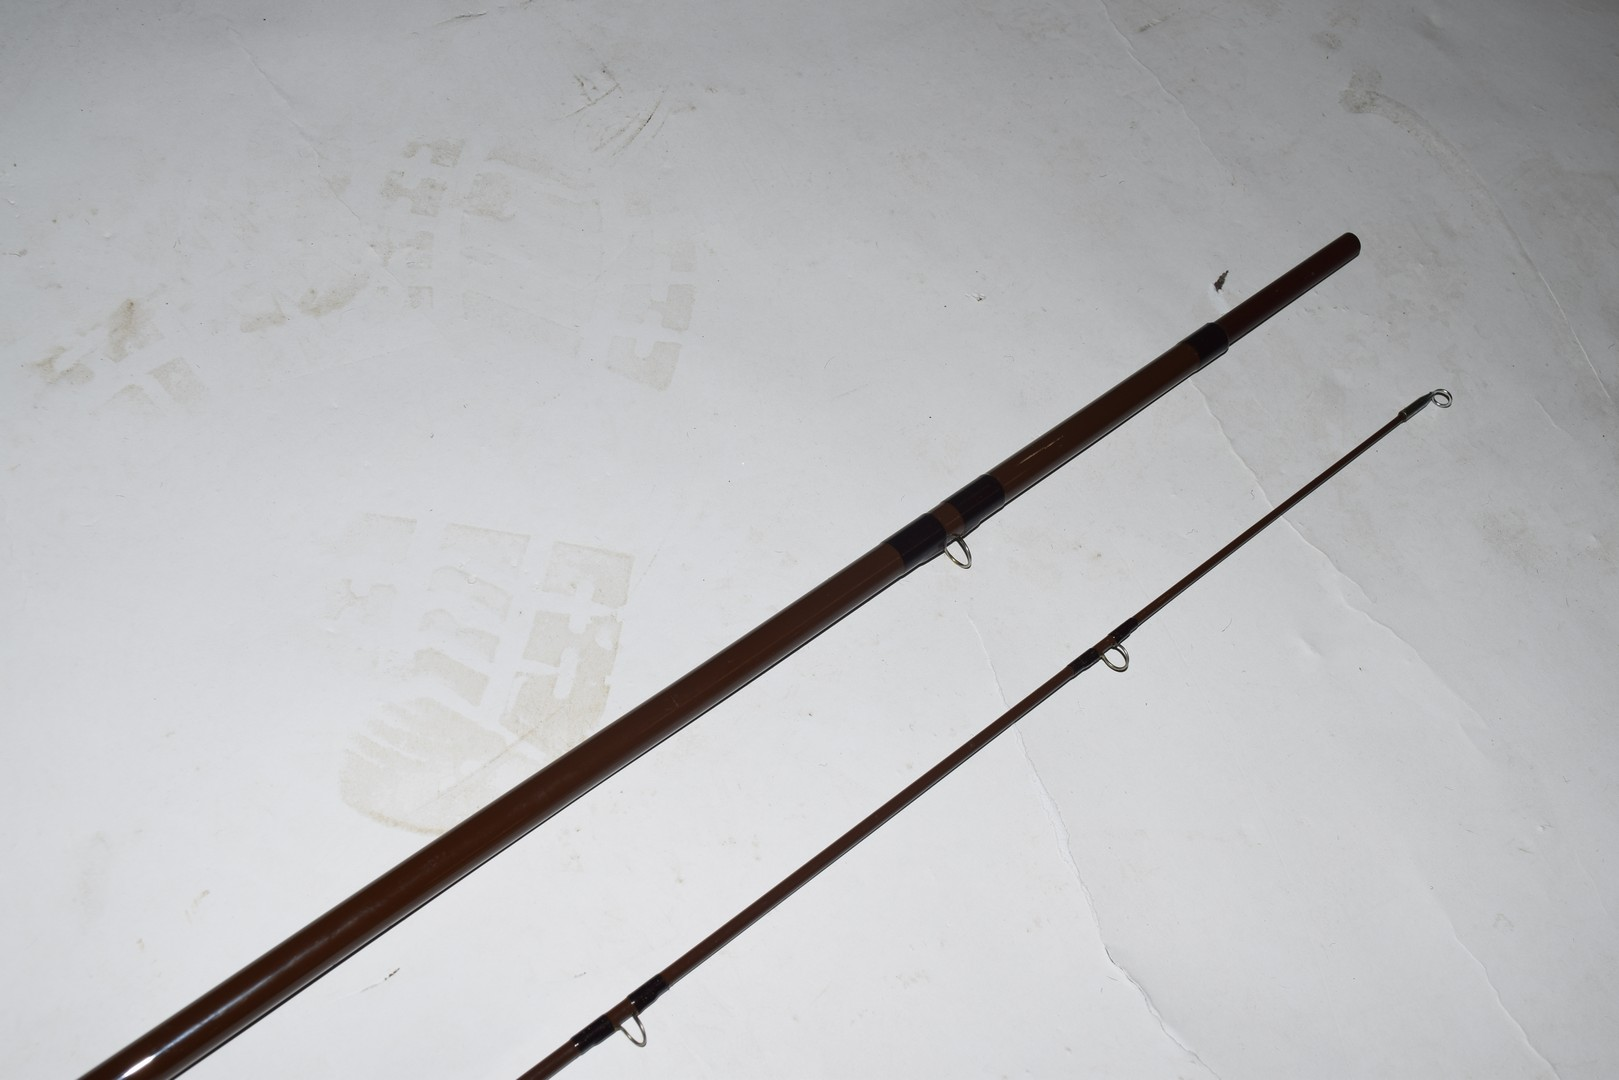 Bruce & Walker, England, vintage fly fishing rod 'The Loch' - Image 6 of 6